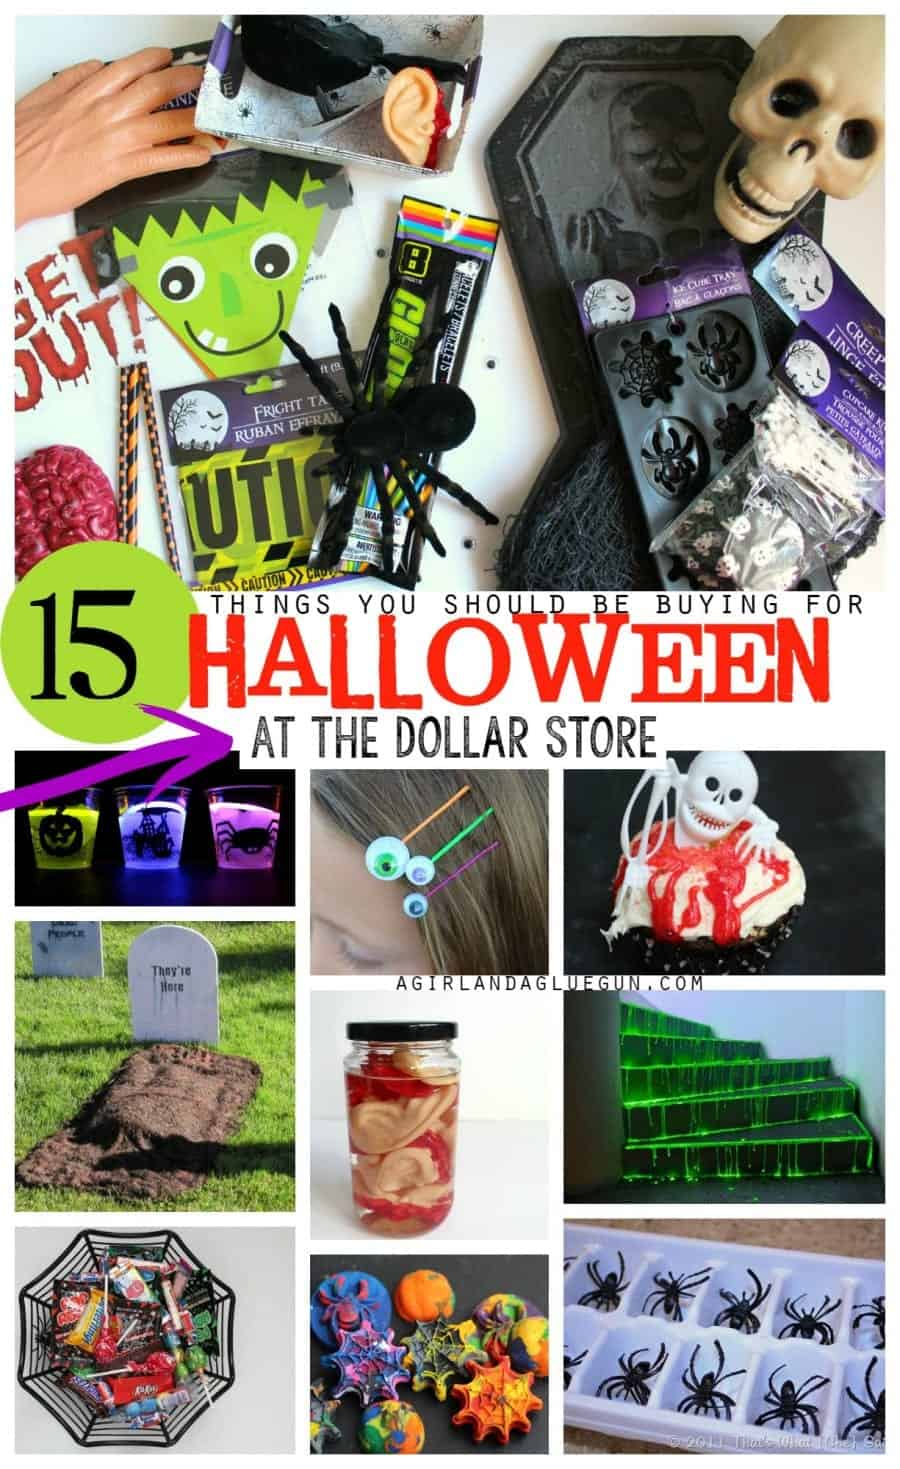 502a6ffc6ff2c 15 AMAZING Halloween things to buy at the dollar store! - A girl and ...